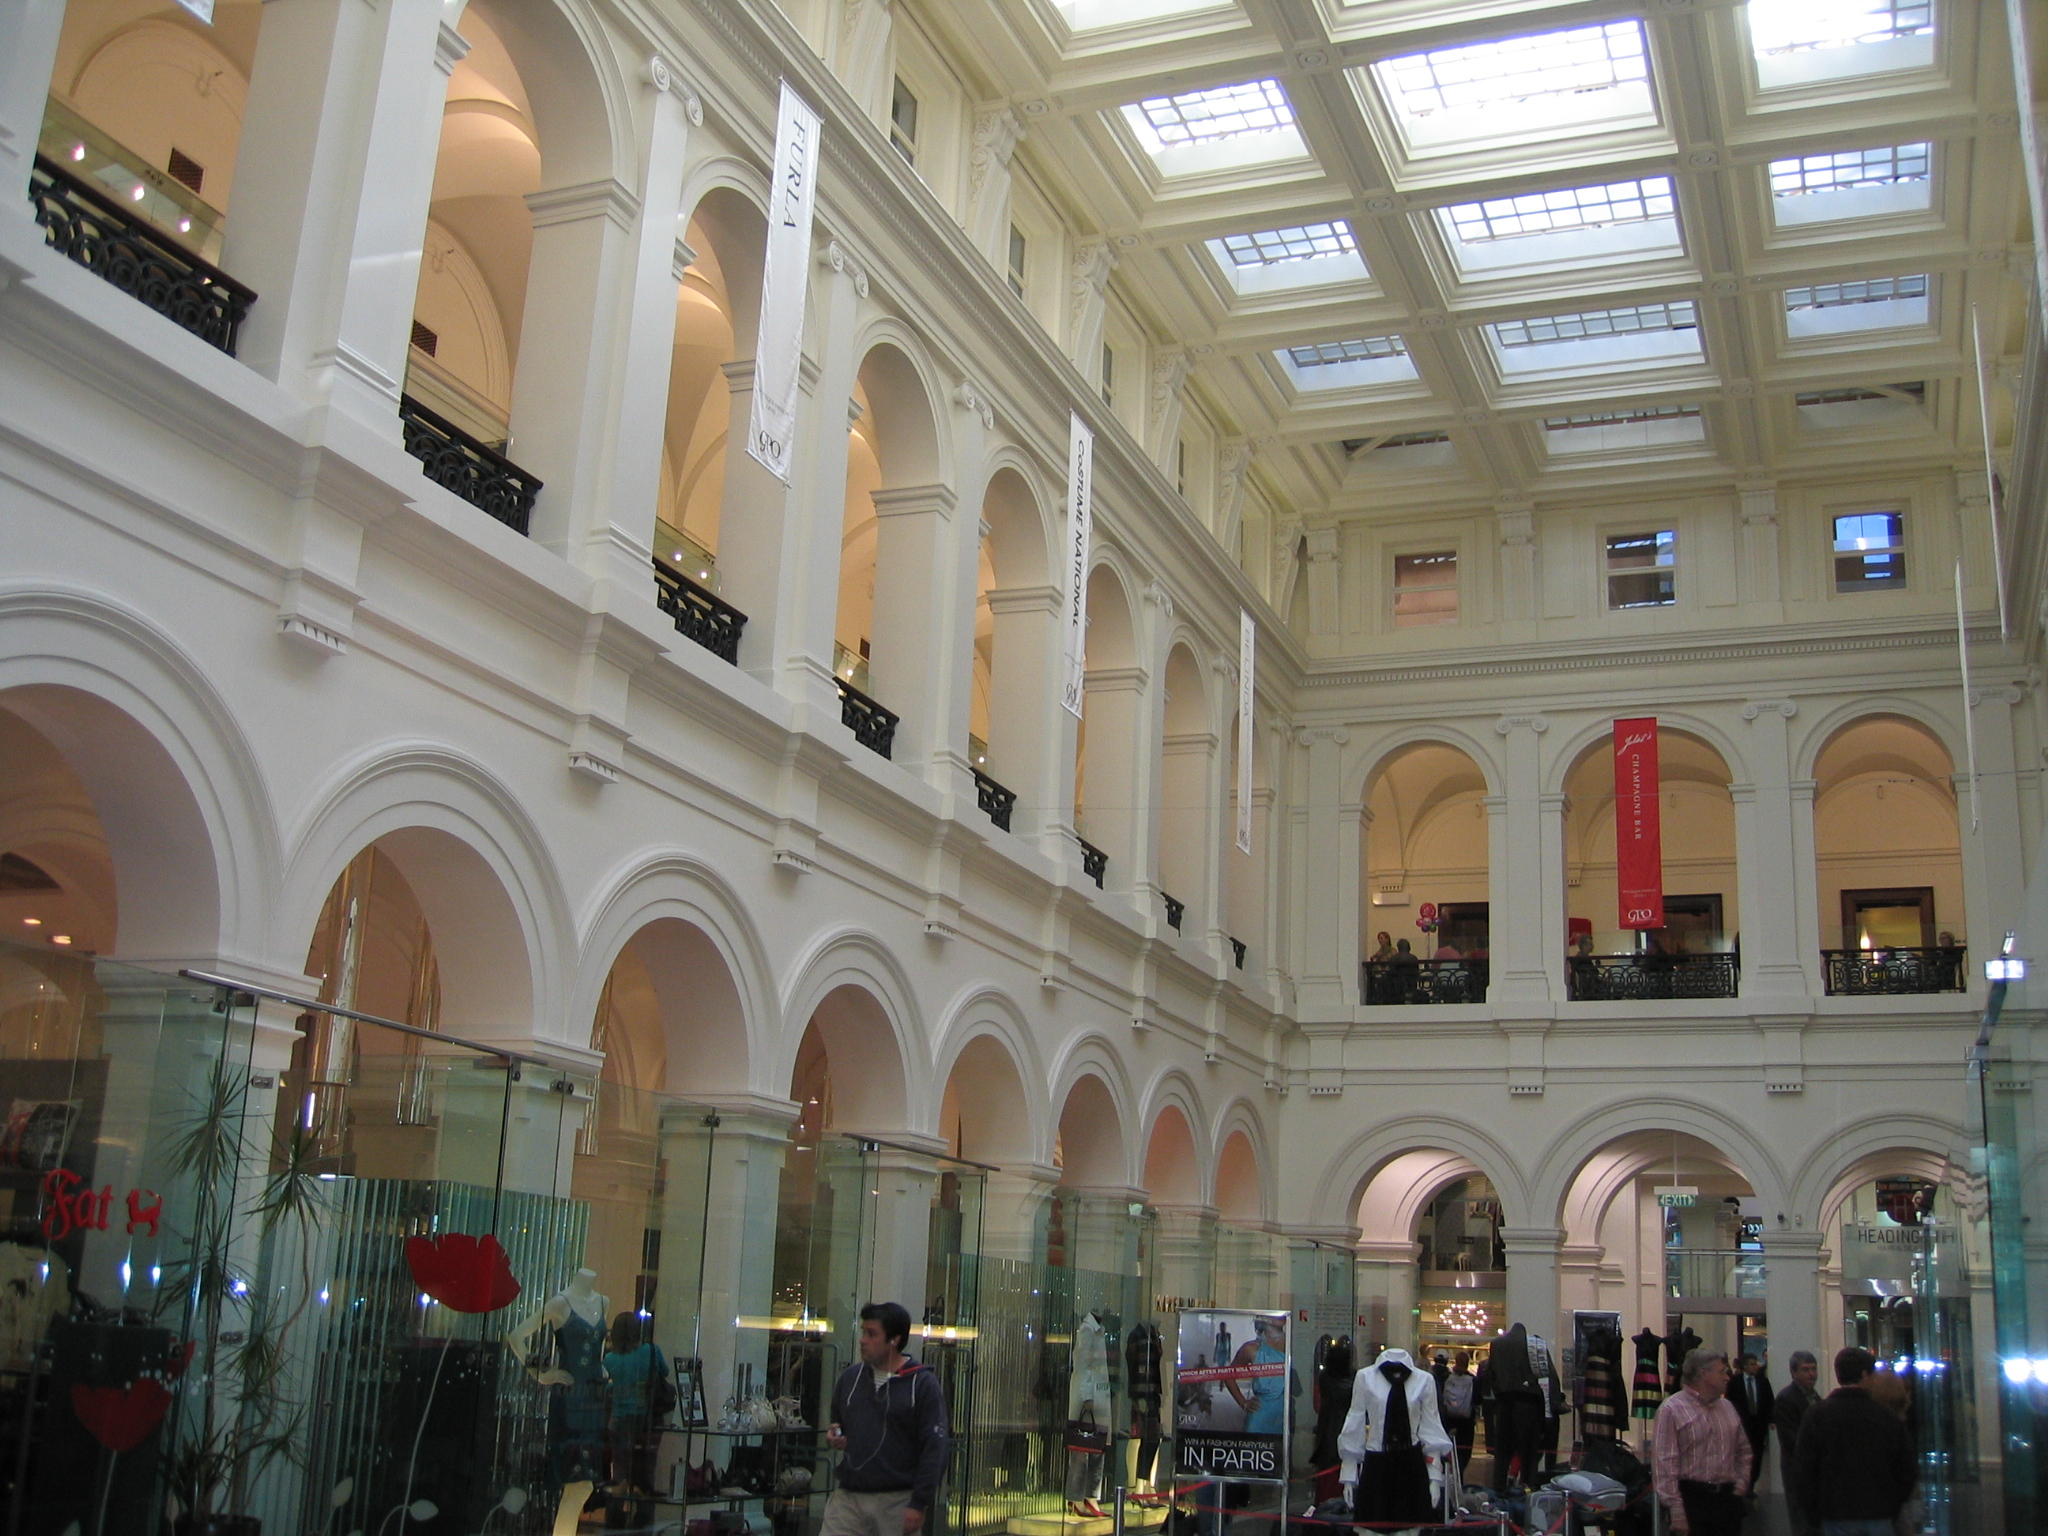 Melbourne S Gpo Shopping Mall In Melbourne Thousand